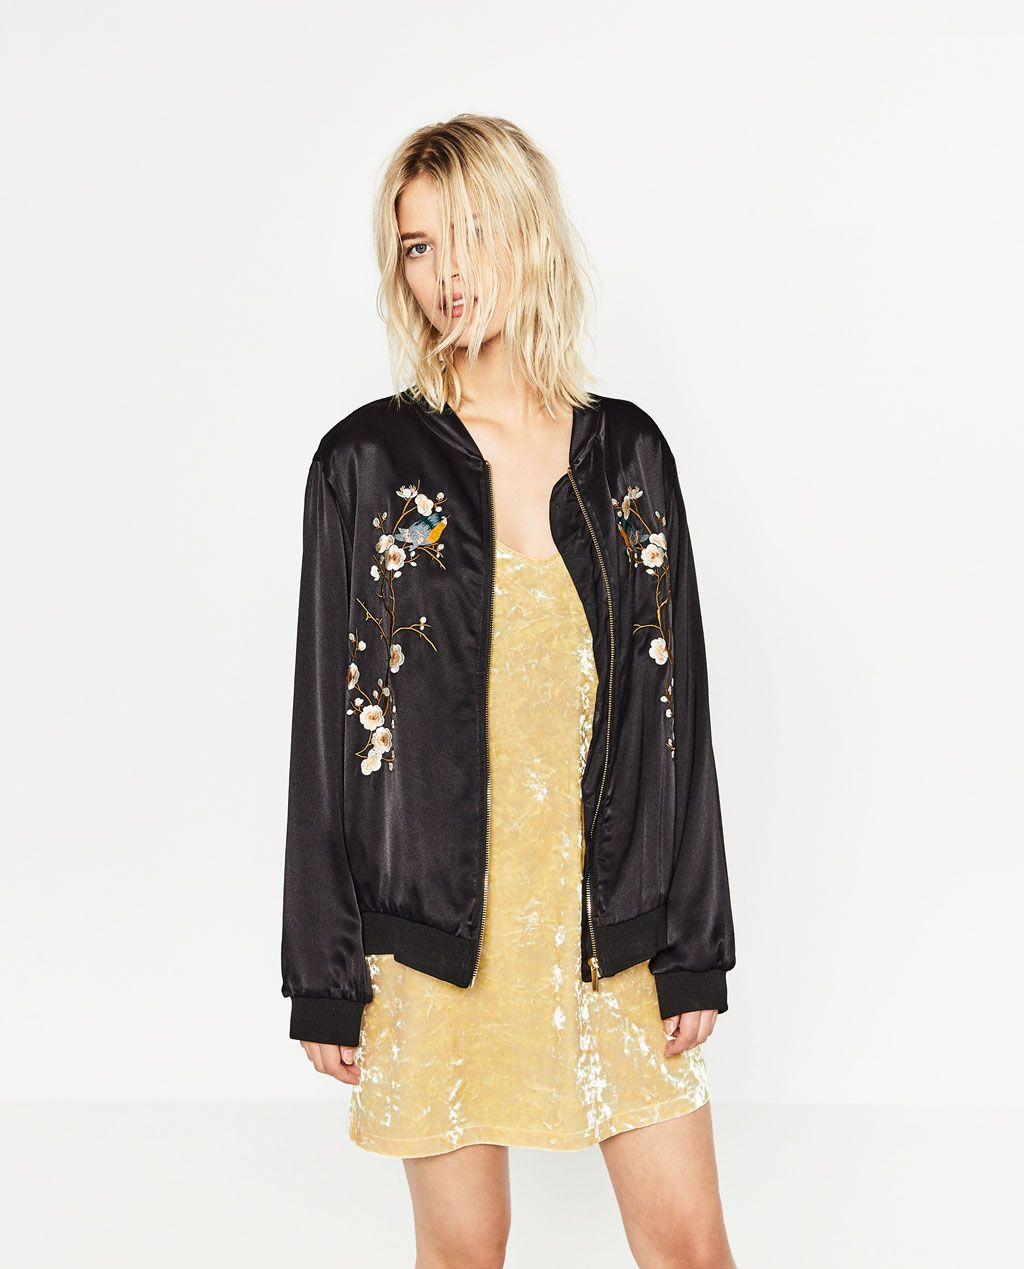 Floral embroidered bomber jacket bombers outerwear woman